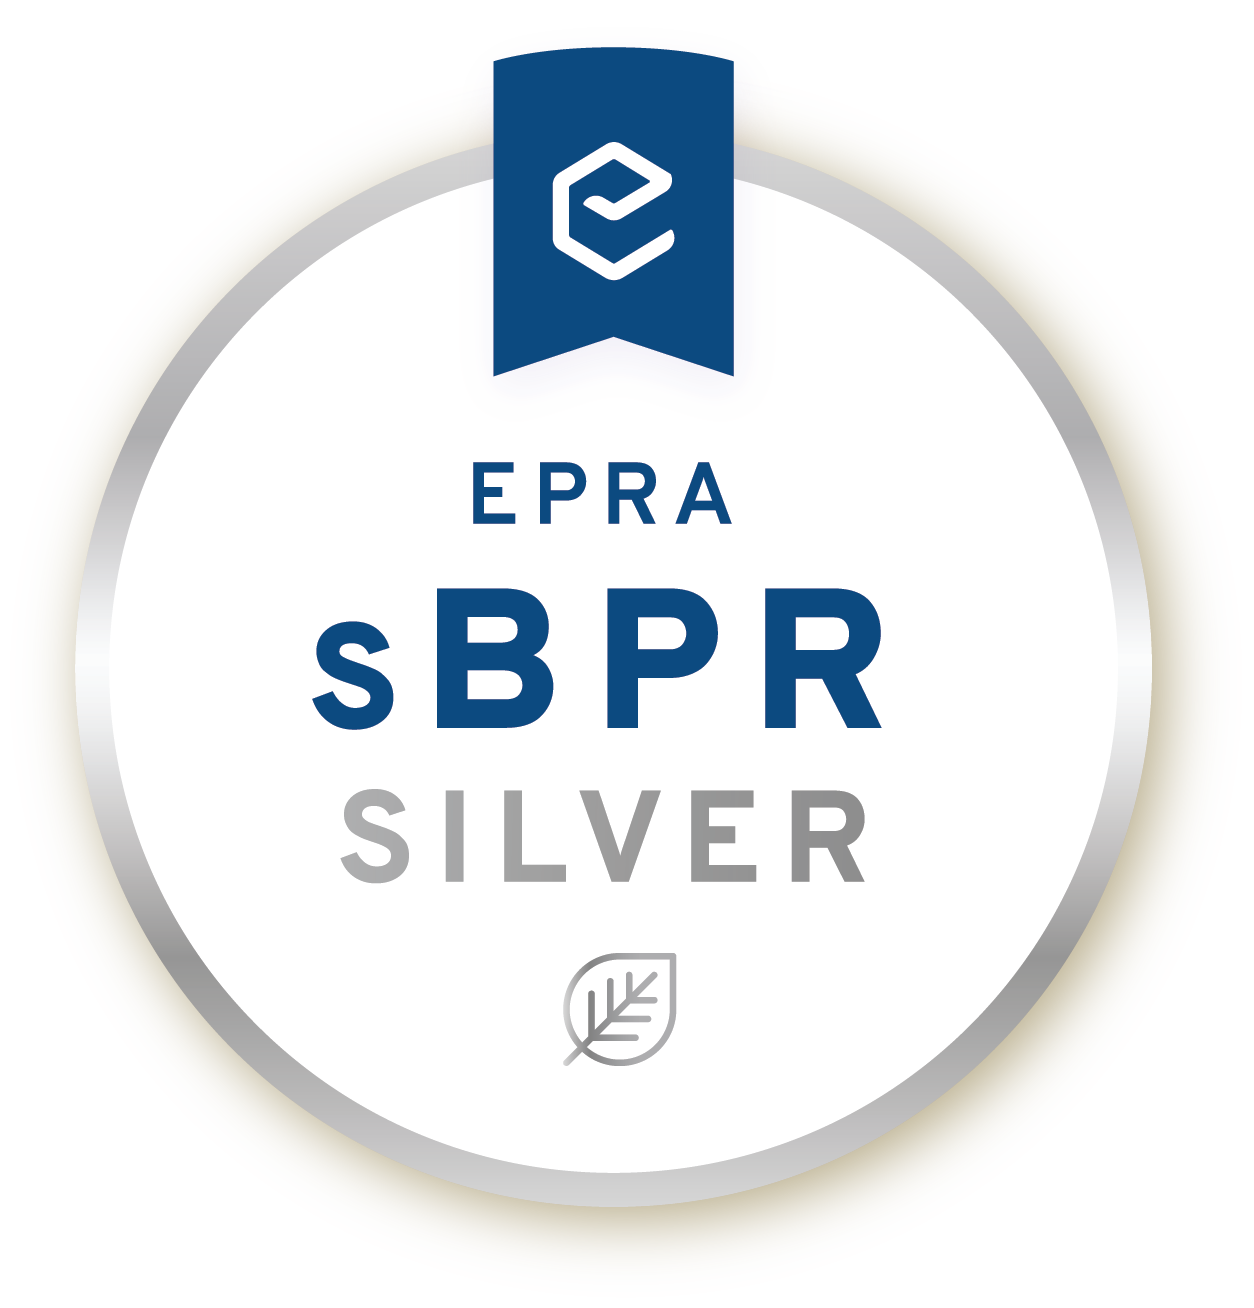 EPRA Sustainability Best Practices Recommendations SILVER